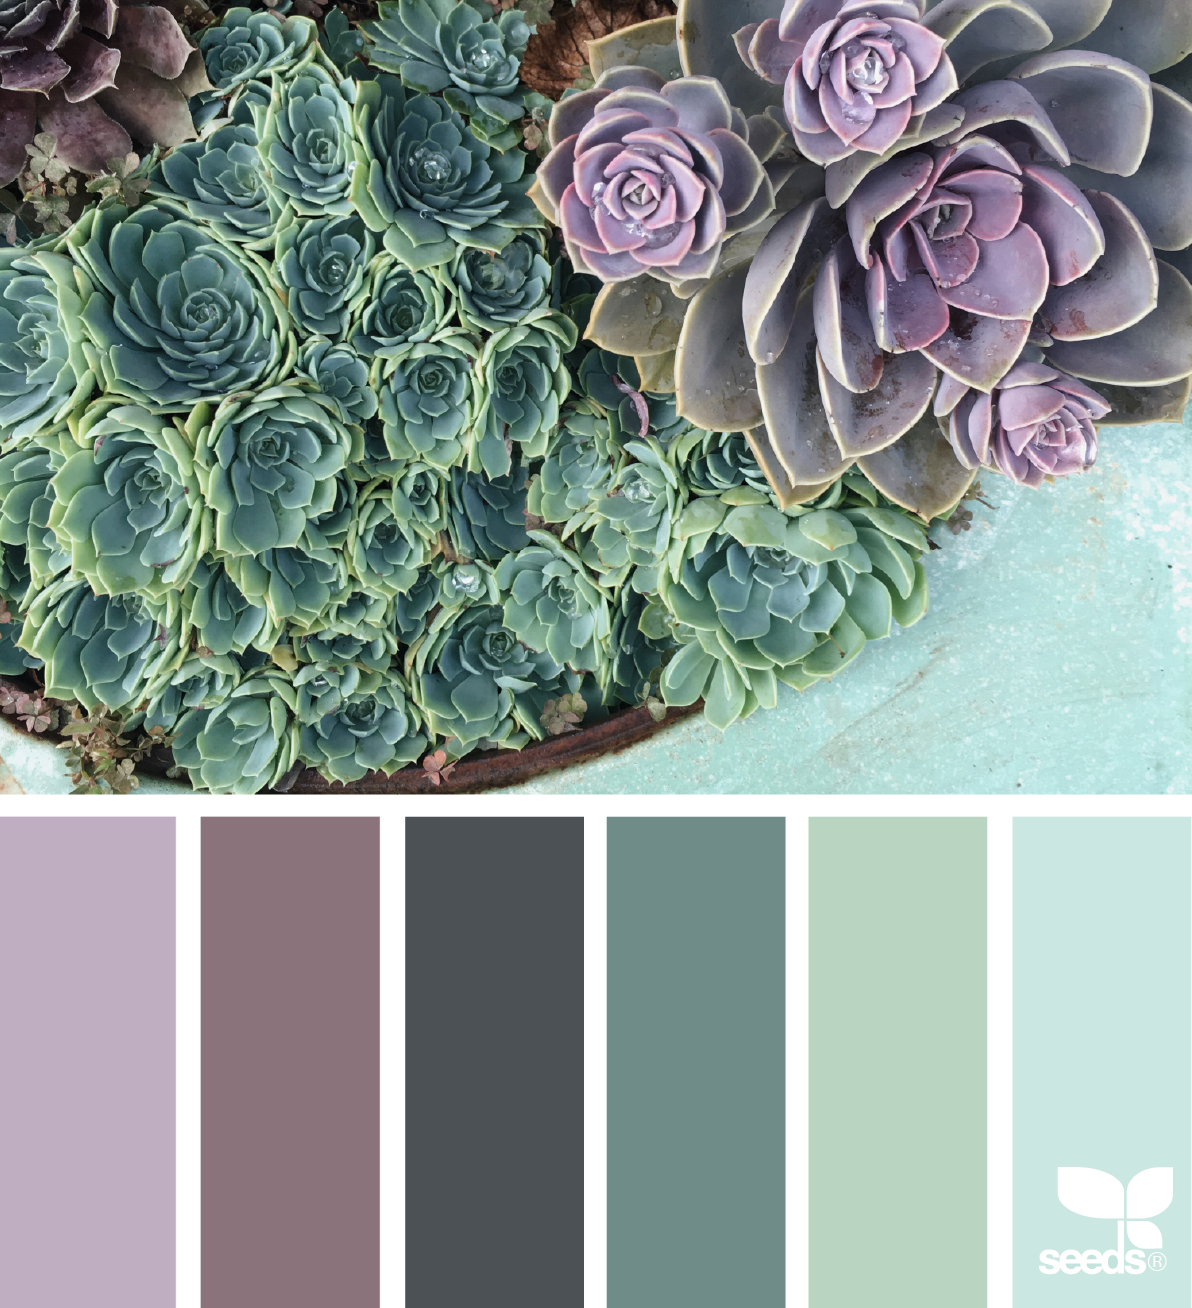 Colors that go well with green and purple - Purple Color Palette Green Succulent Garden Relax Peaceful Mood Board